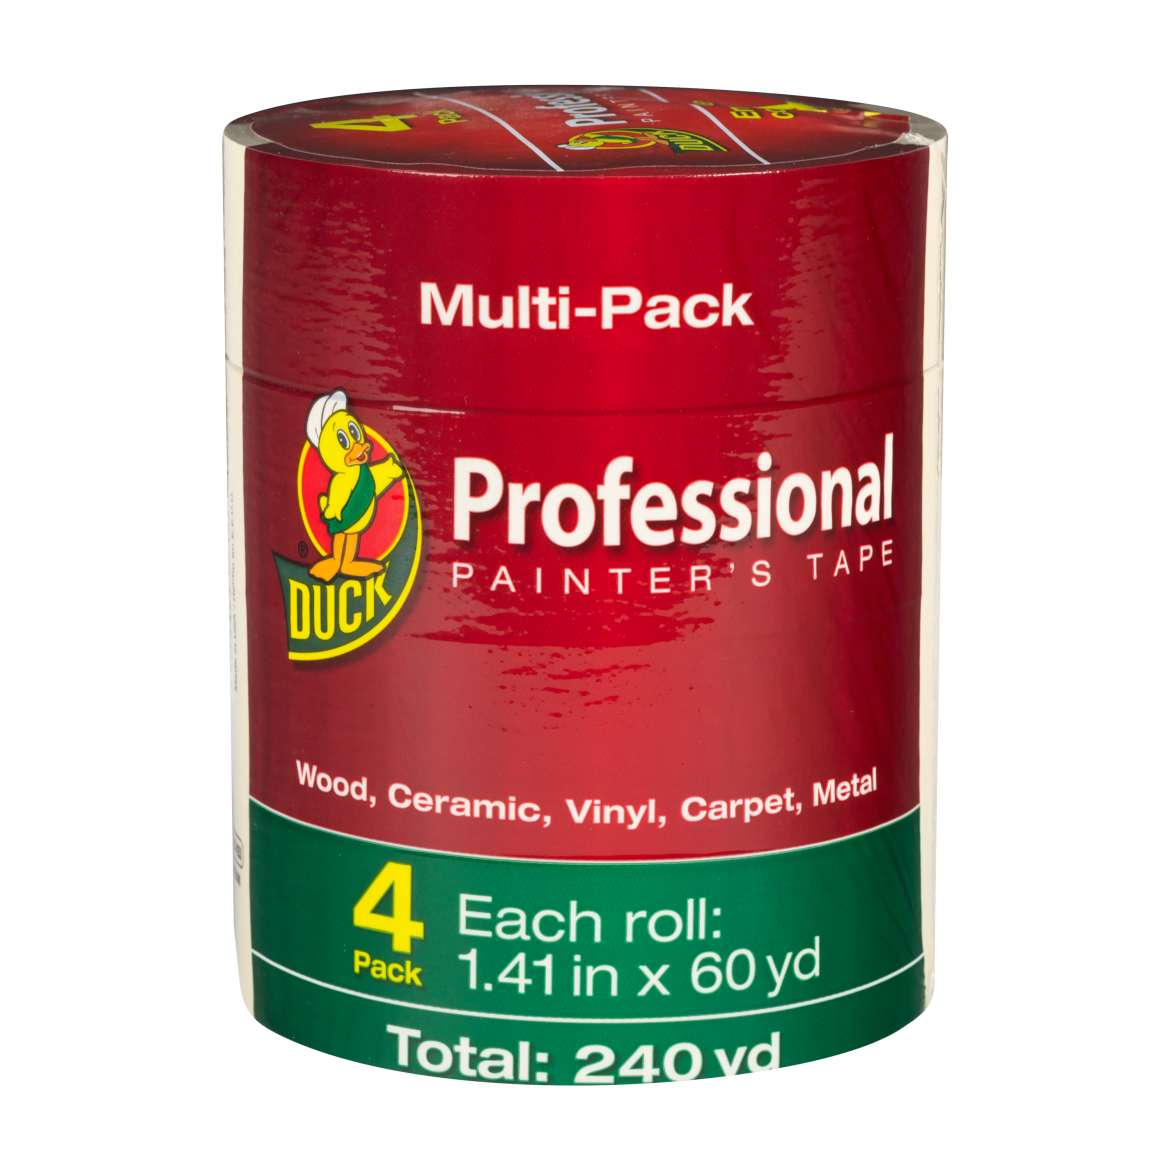 Duck® Brand Professional Painter's Tape - Beige, 4 pk, 1.41 in. x 60 yd. Image